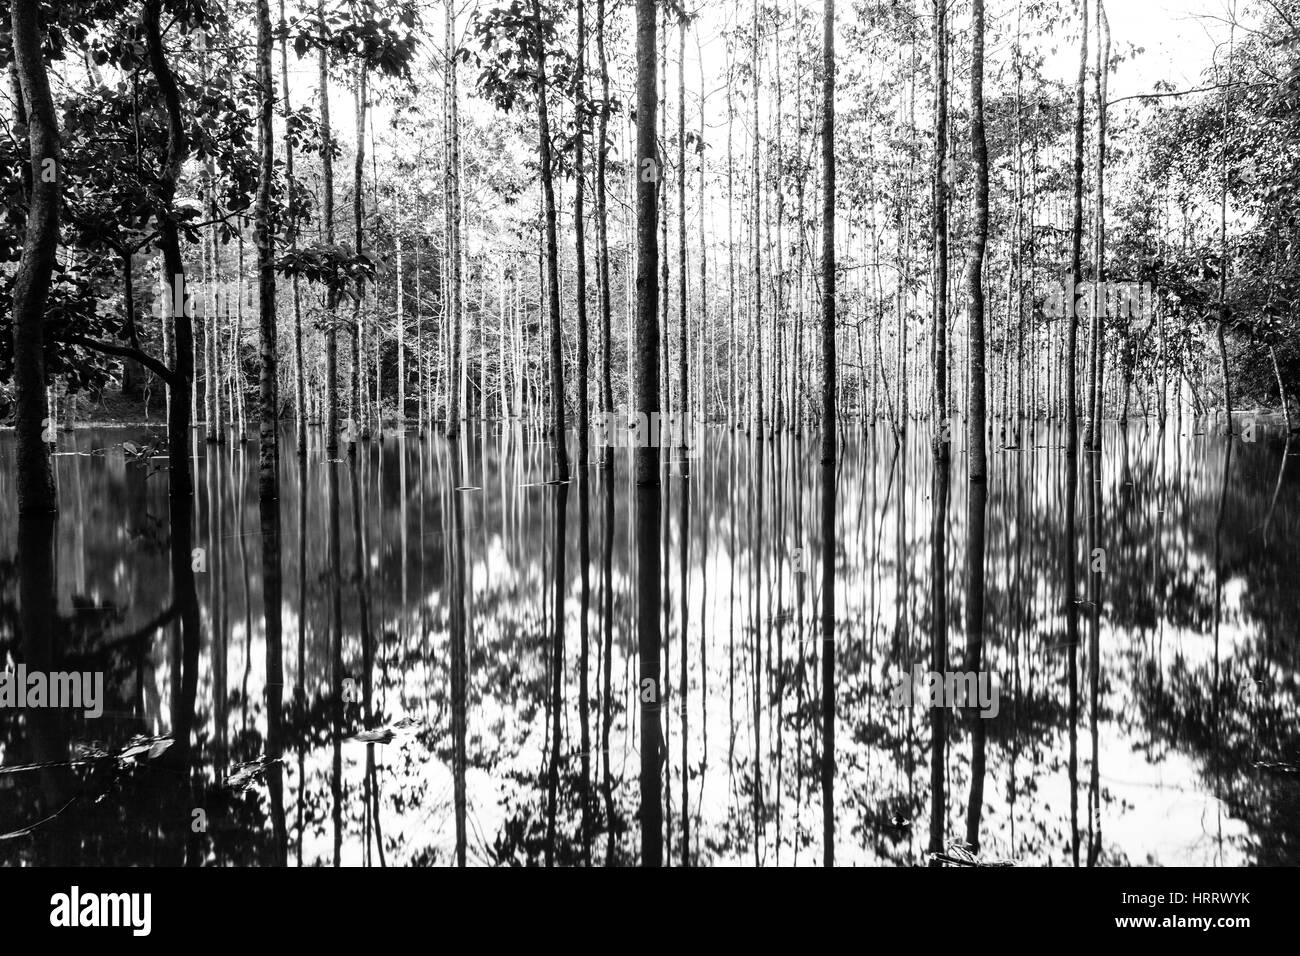 Mysterious tree trunks reflected on the water in tropical jungles of Angkor Wat, Cambodia. - Stock Image